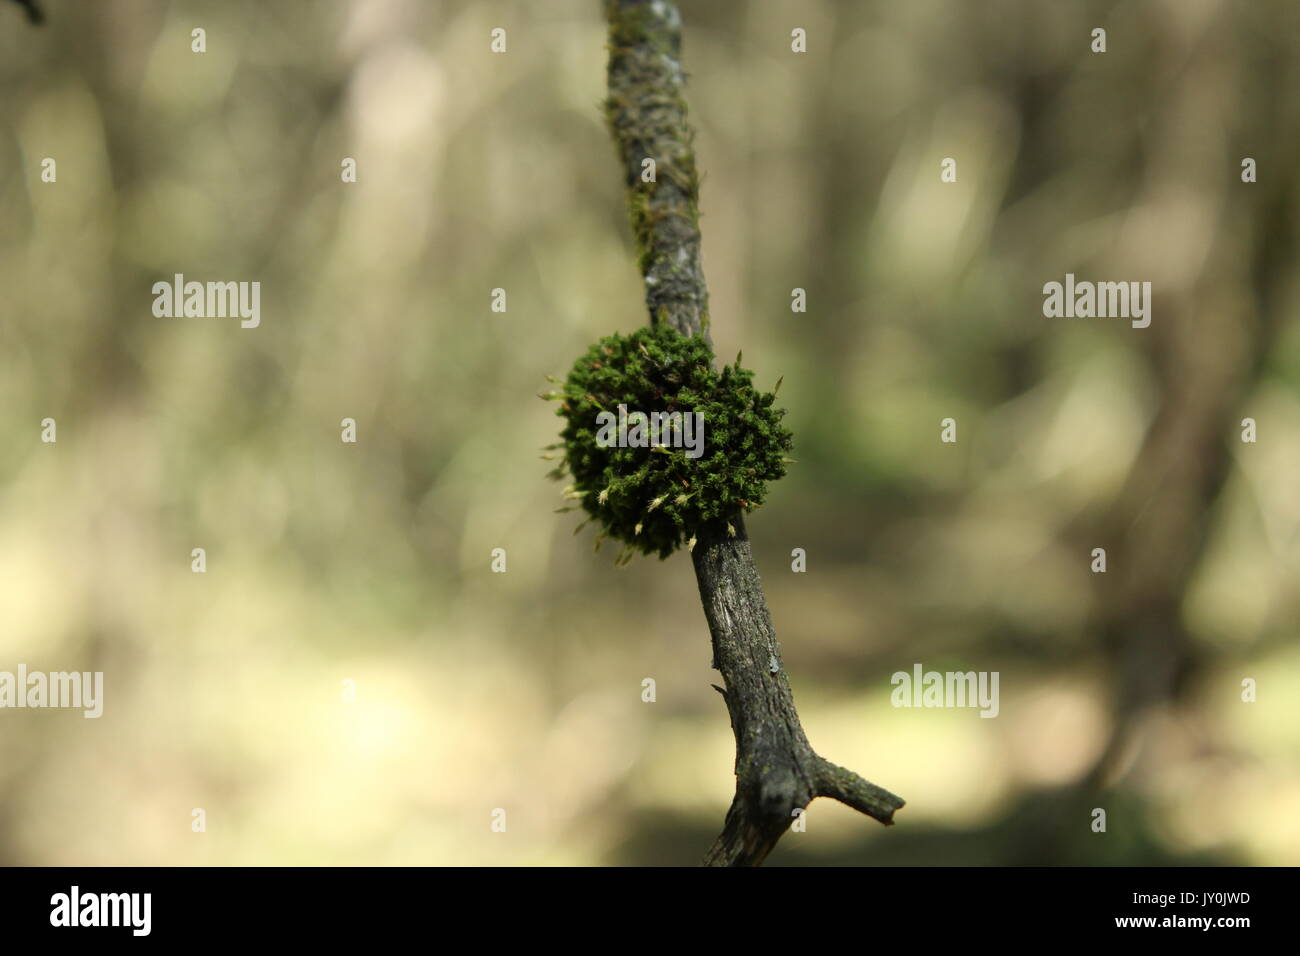 Moss growing on trees out in the woods. - Stock Image